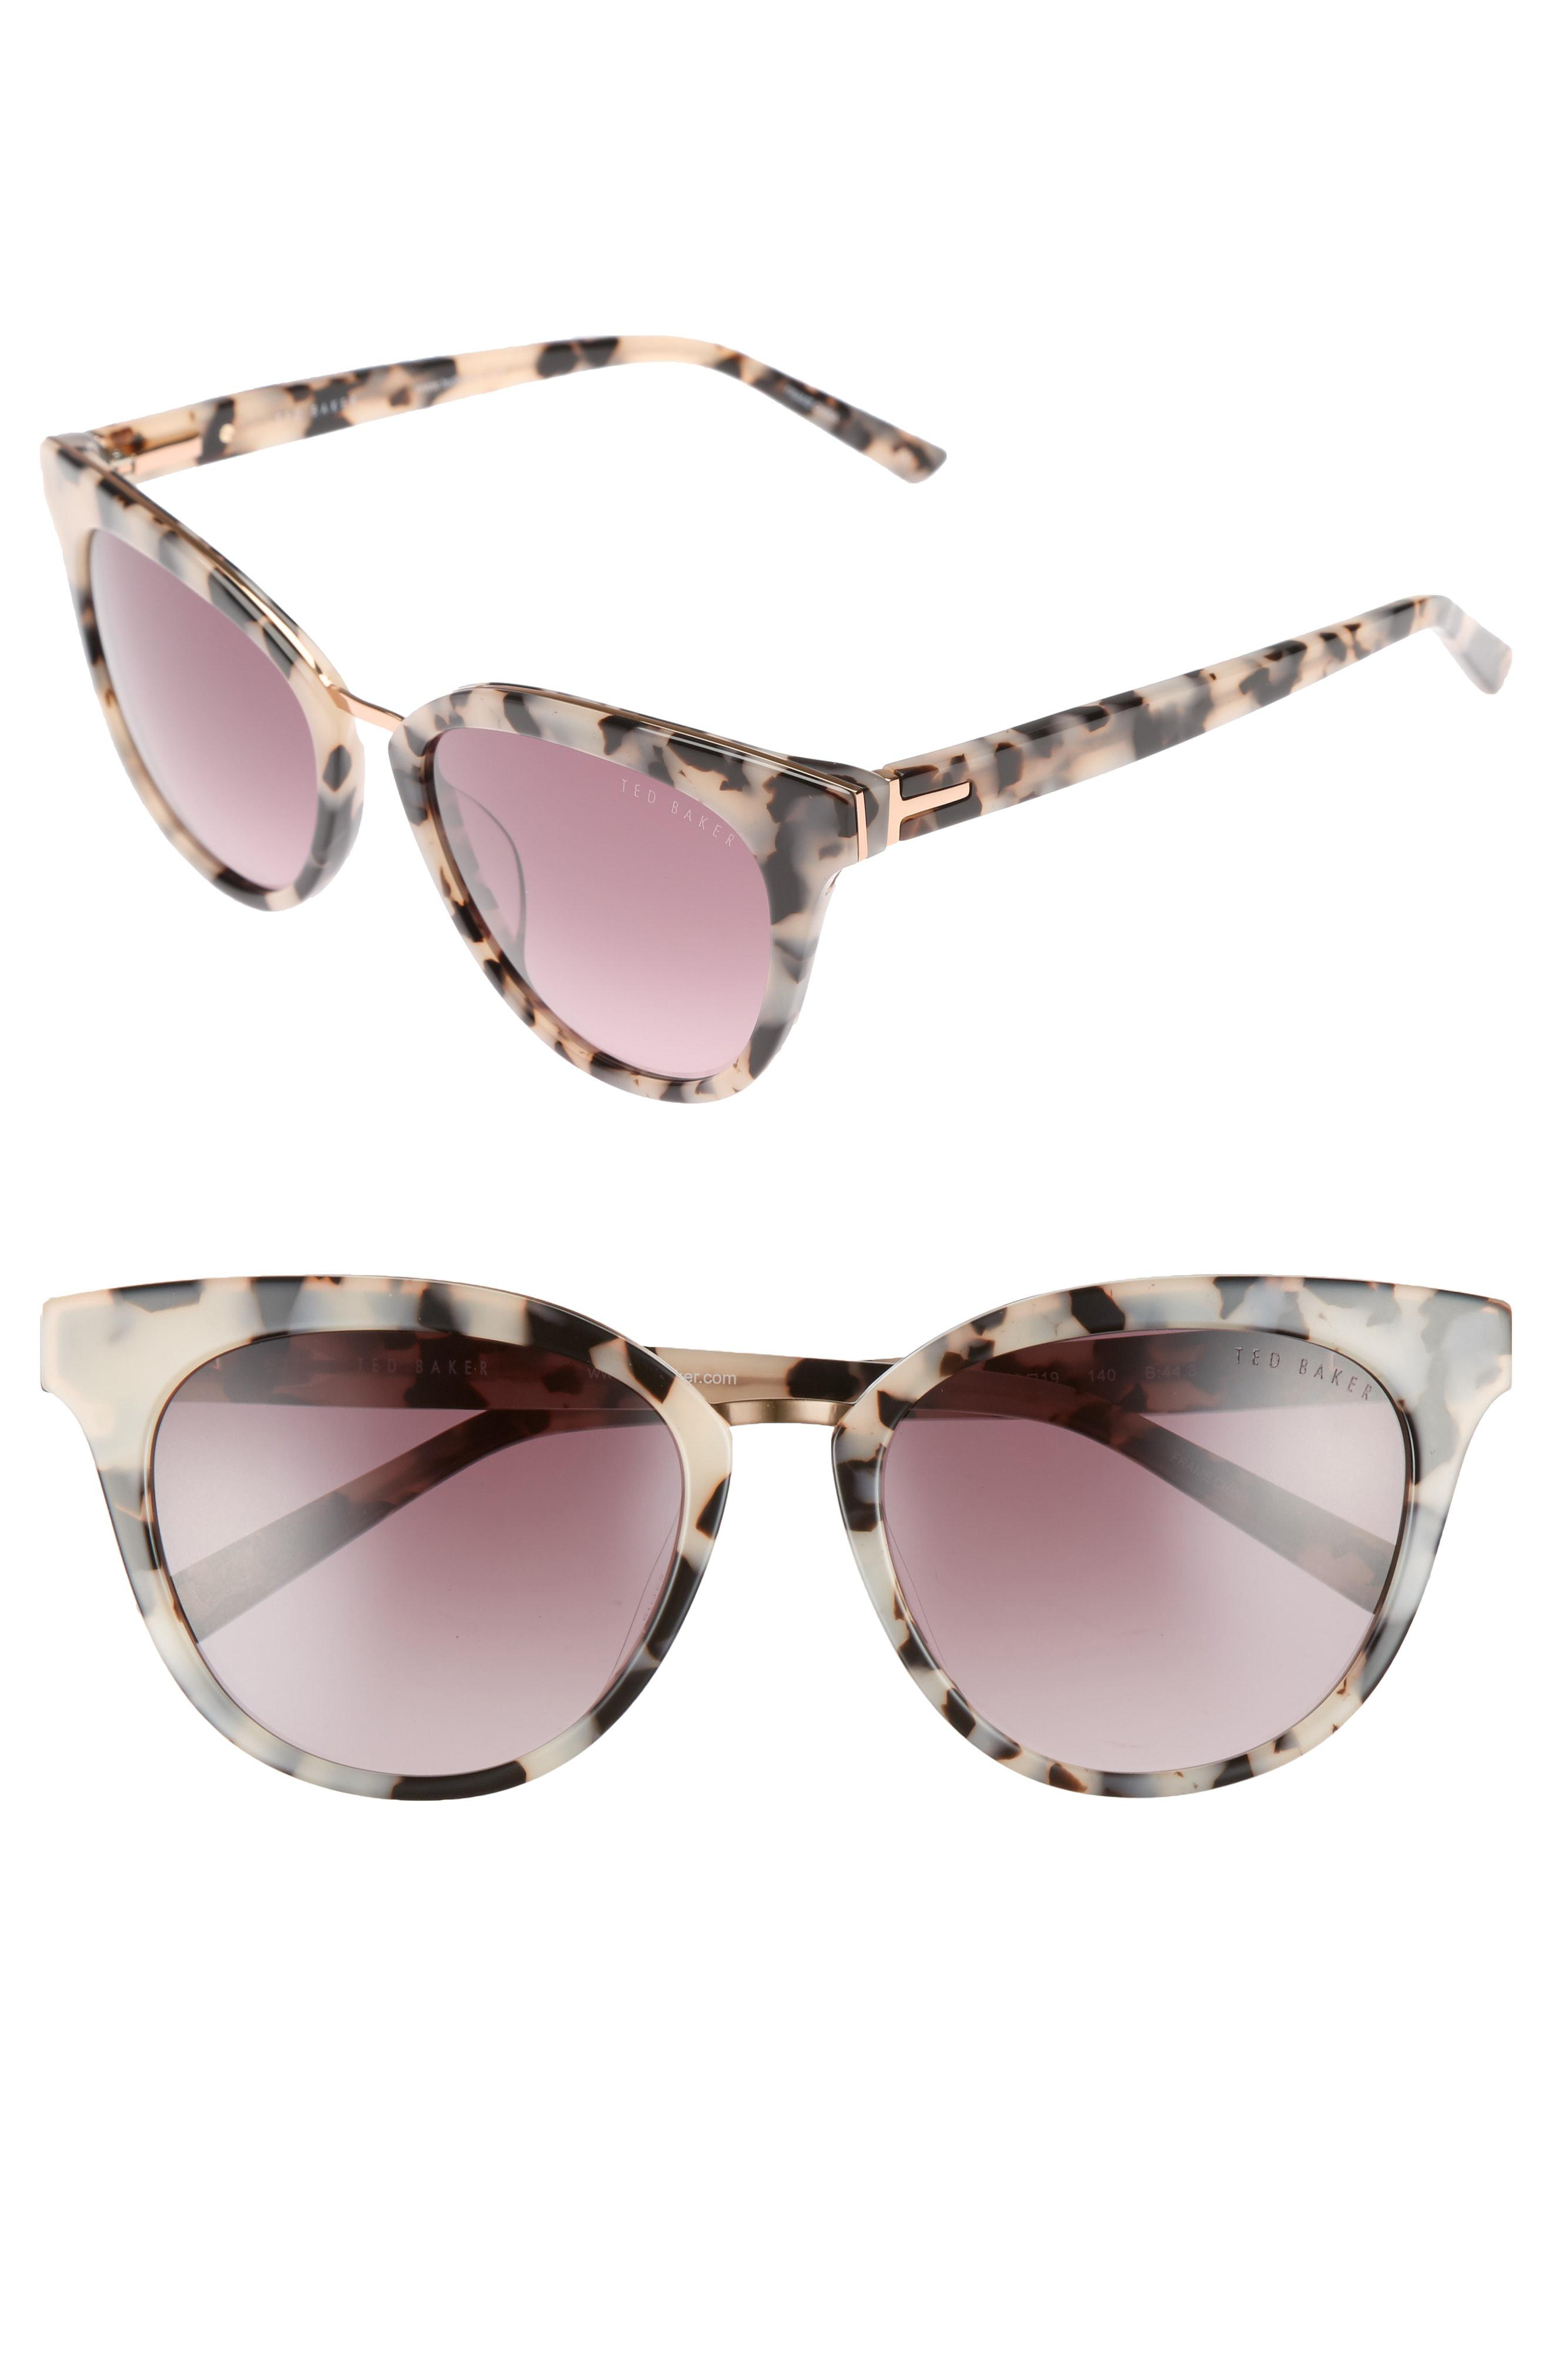 ad03370aa3 Lyst - Ted Baker 53mm Cat Eye Sunglasses -